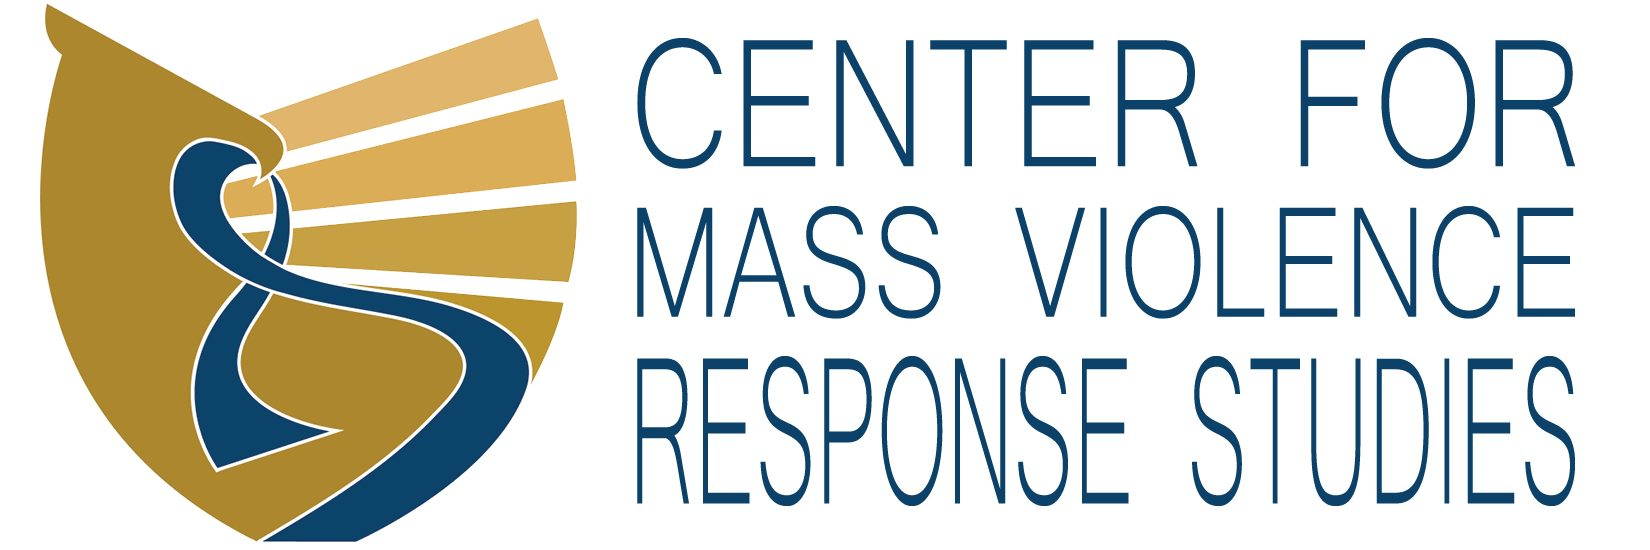 Center for Mass Violence Response Studies